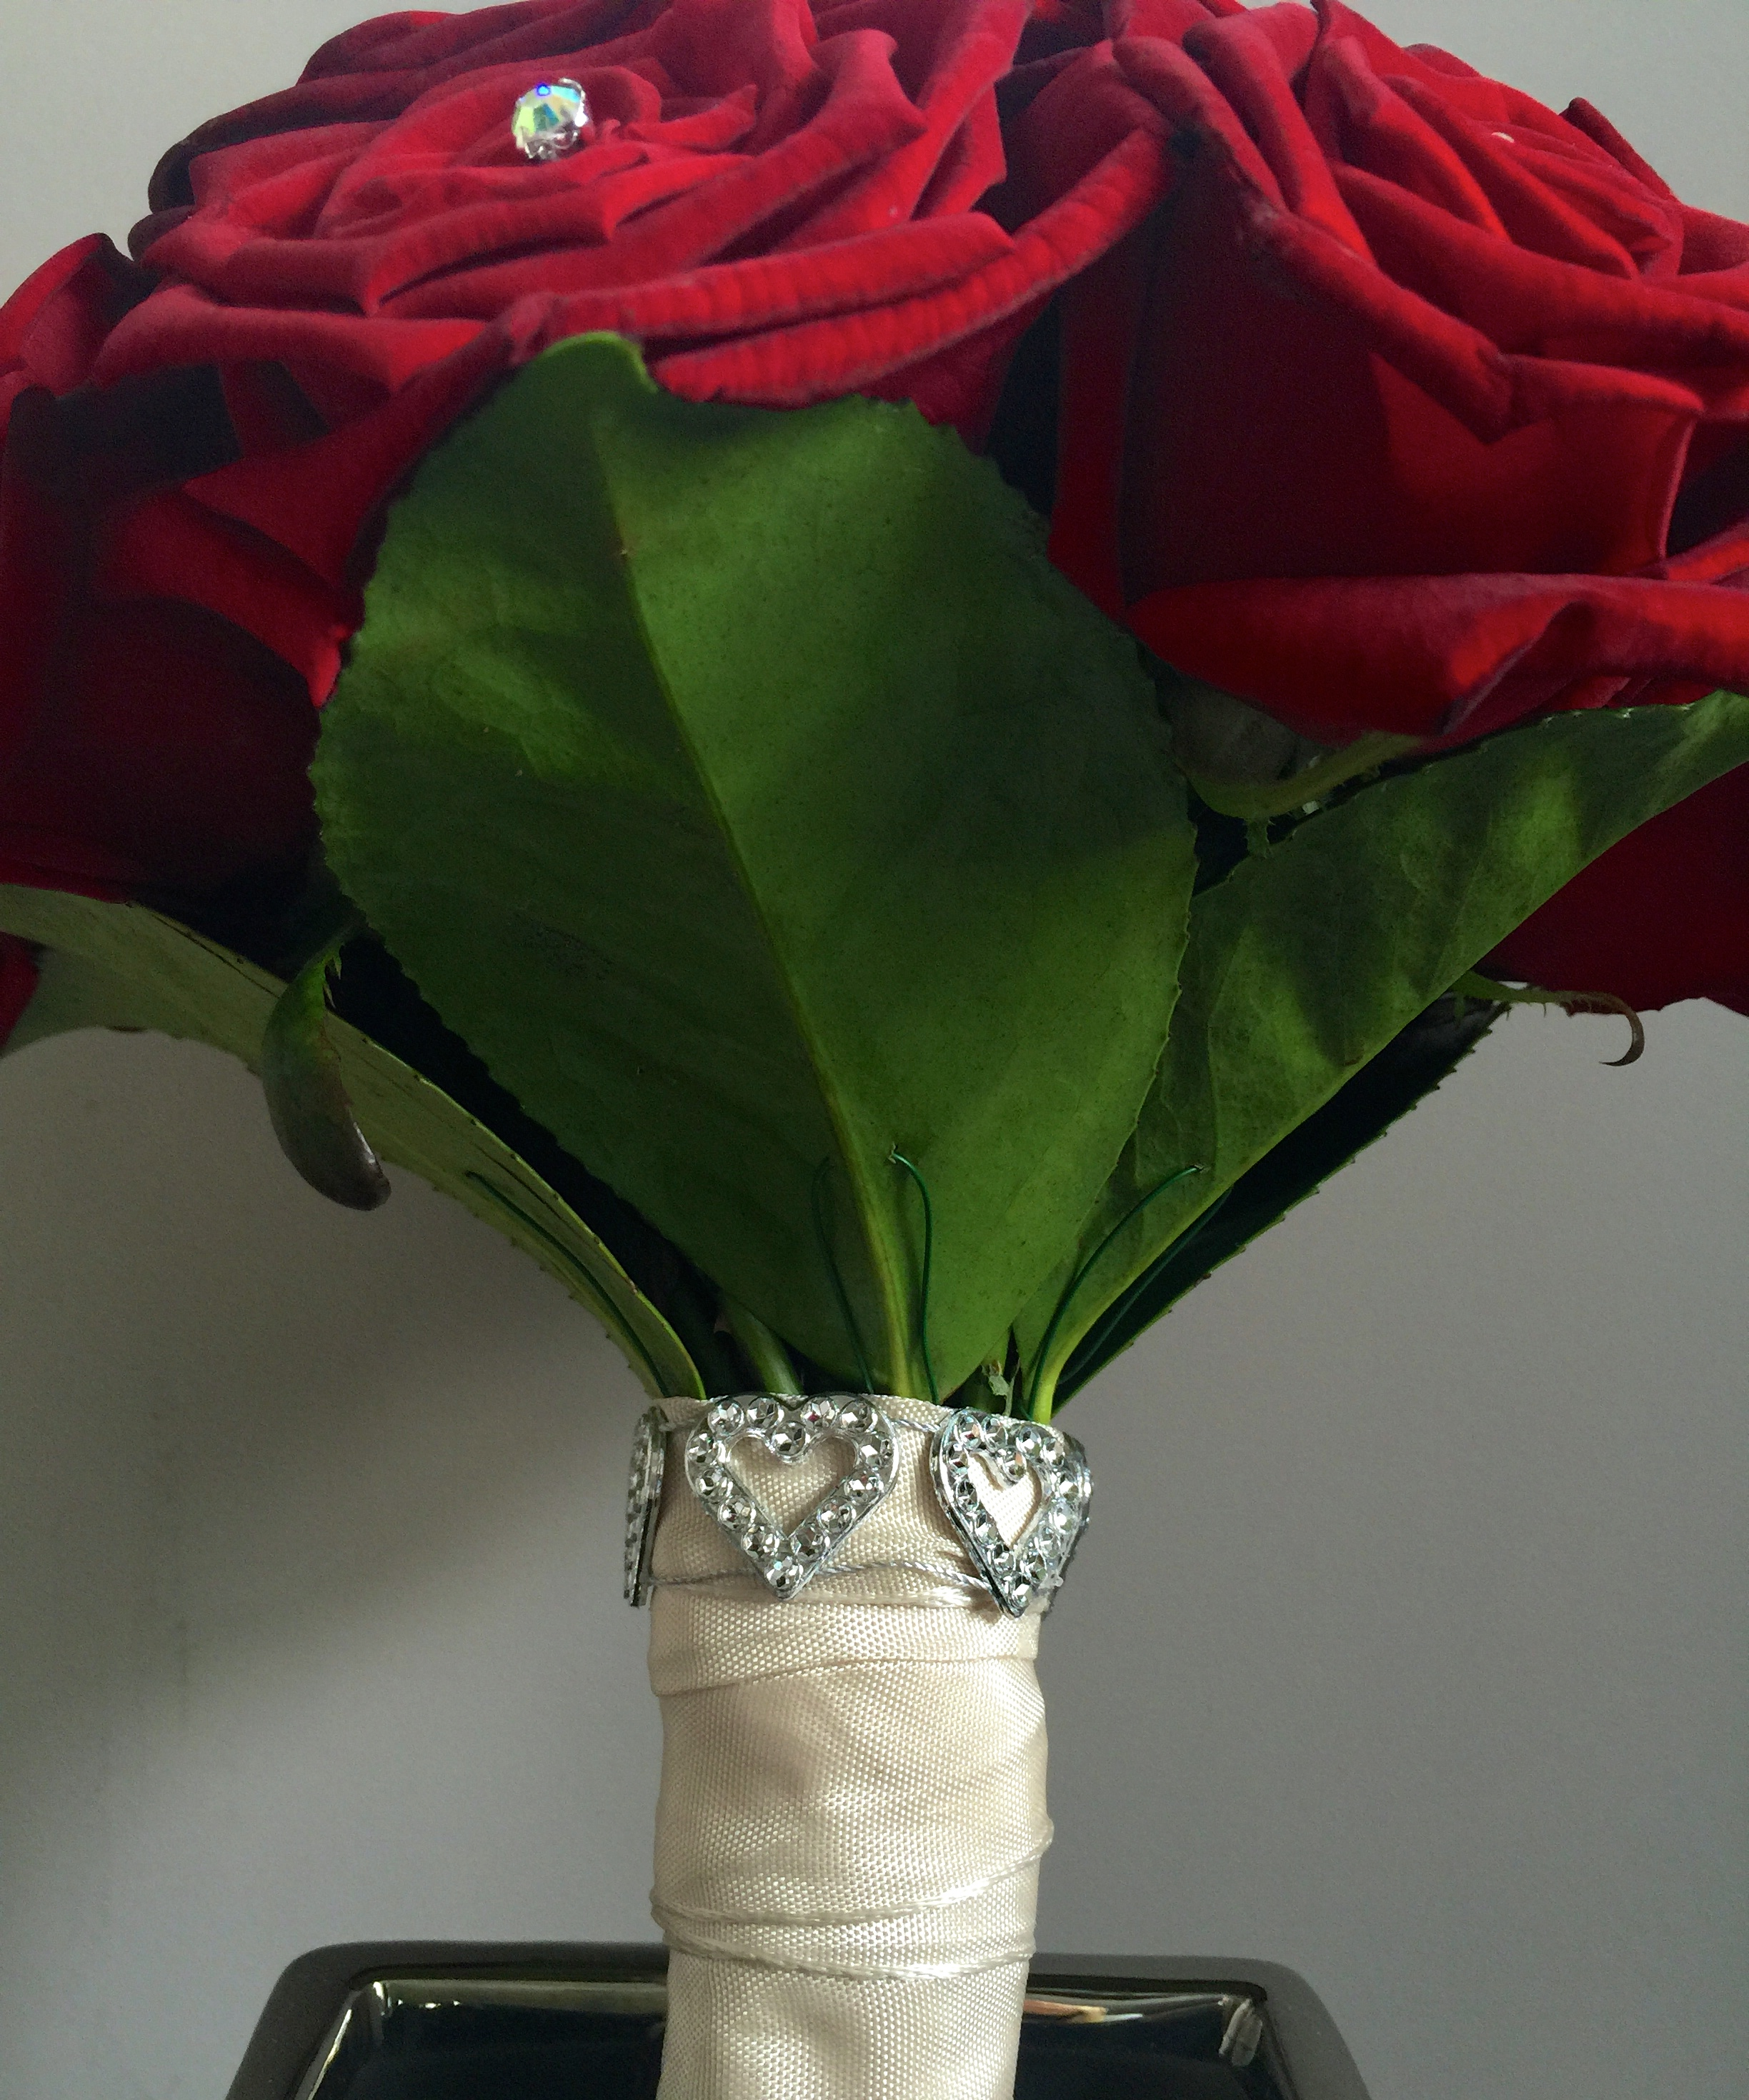 Rose bouquet stem detail